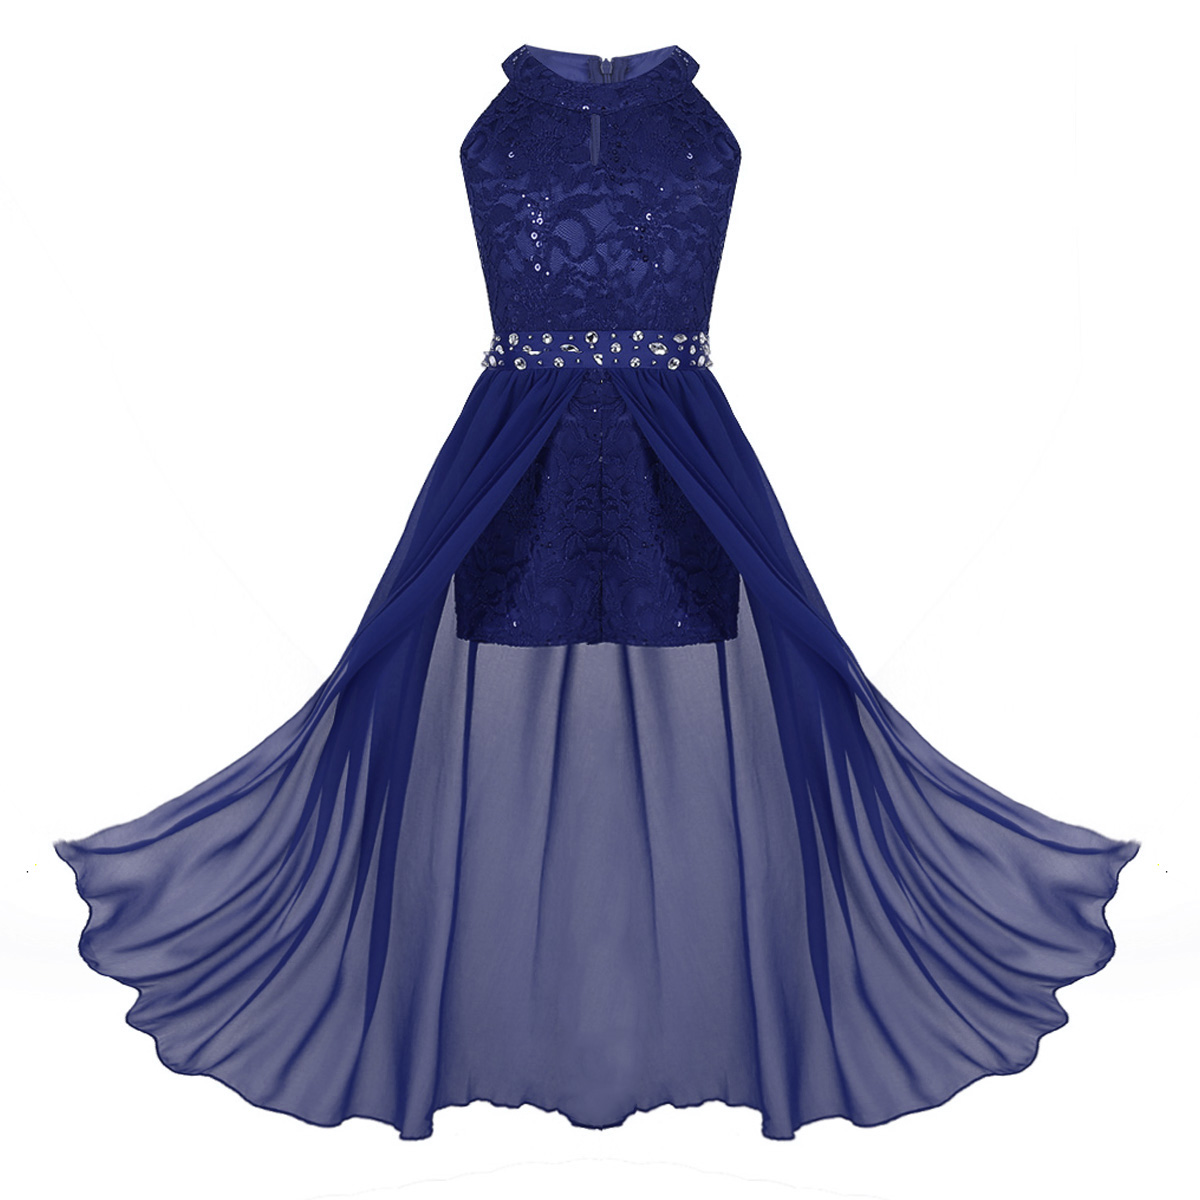 Kids Girls Modern Lyrical Dance Dress Ballroom Latin Dance Wear Dancing Costume